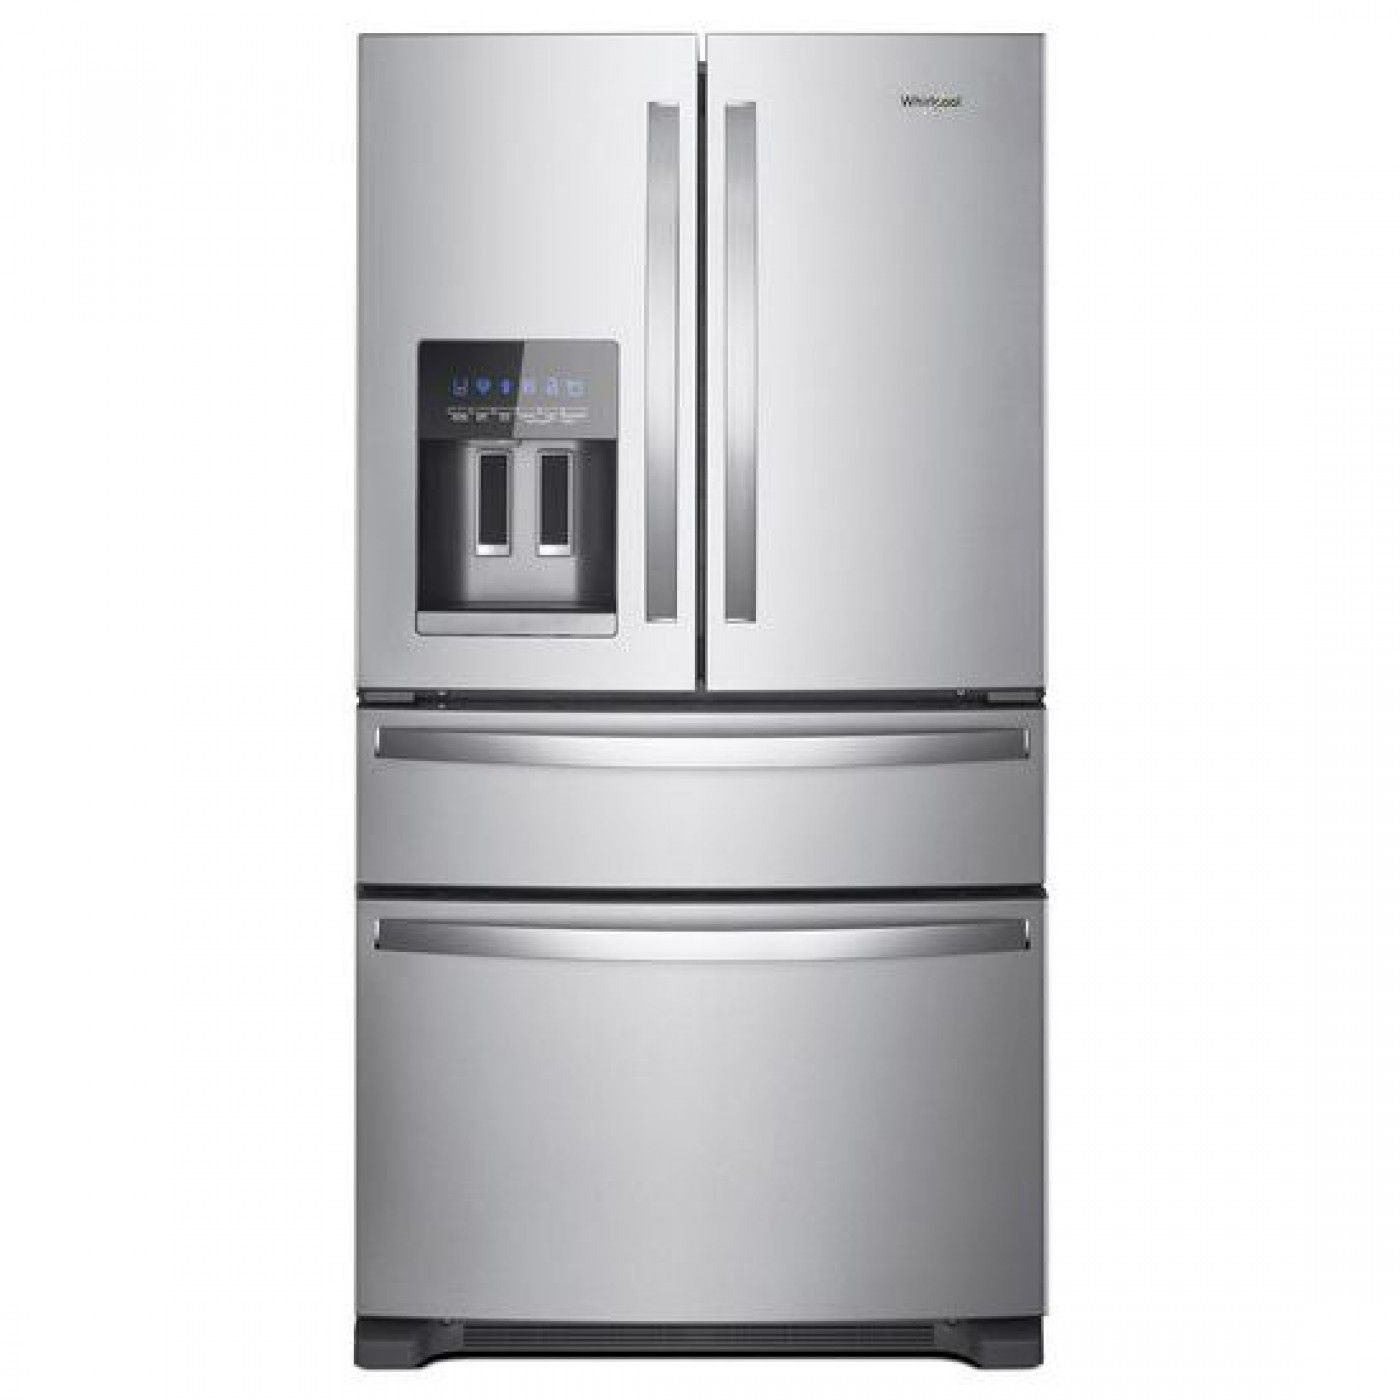 Wrx735sdhz By Whirlpool French Door Refrigerators Goedekers